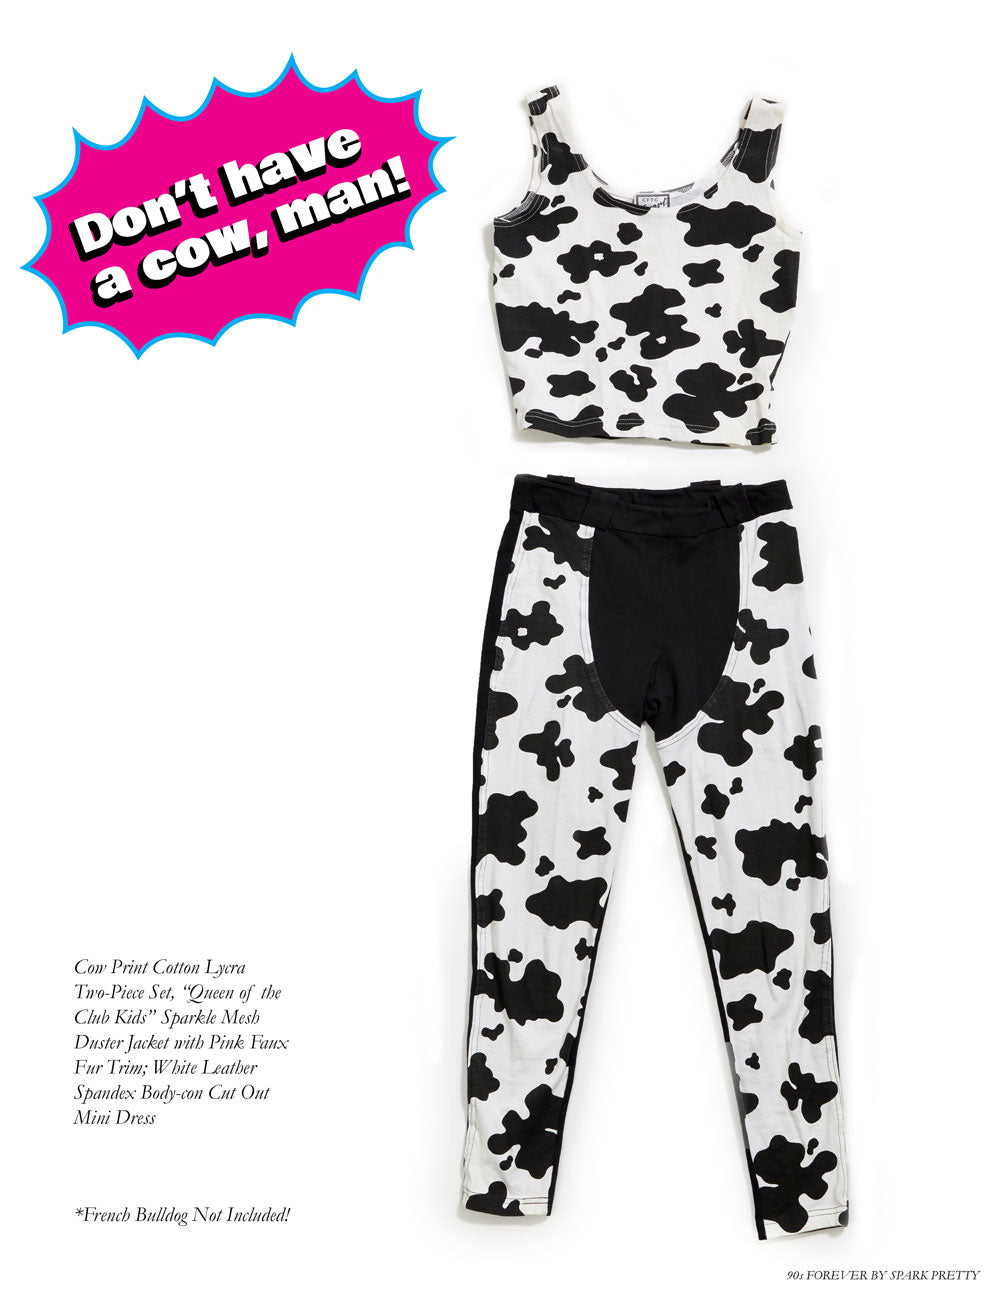 90s Forever Retro Vintage Fashion Apparel Lookbook - Cow Print Cotton Lycra Two-Piece Set